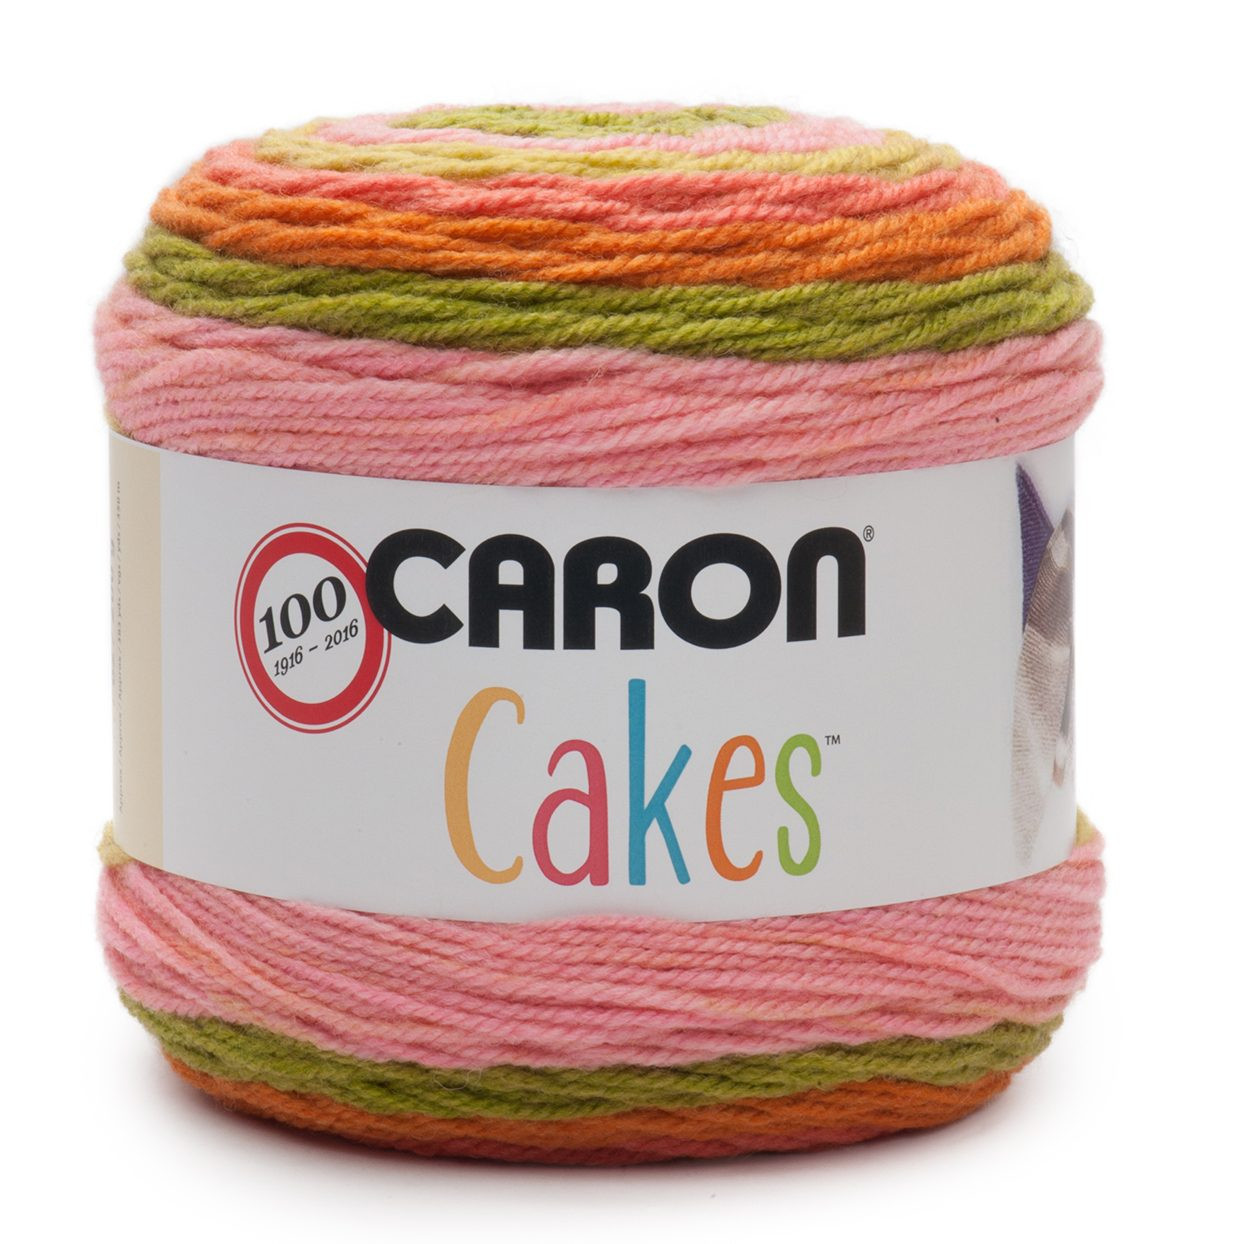 Awesome Free Crochet Patterns Featuring Caron Cakes Yarn Michaels Caron Cakes Of Superb 43 Ideas Michaels Caron Cakes